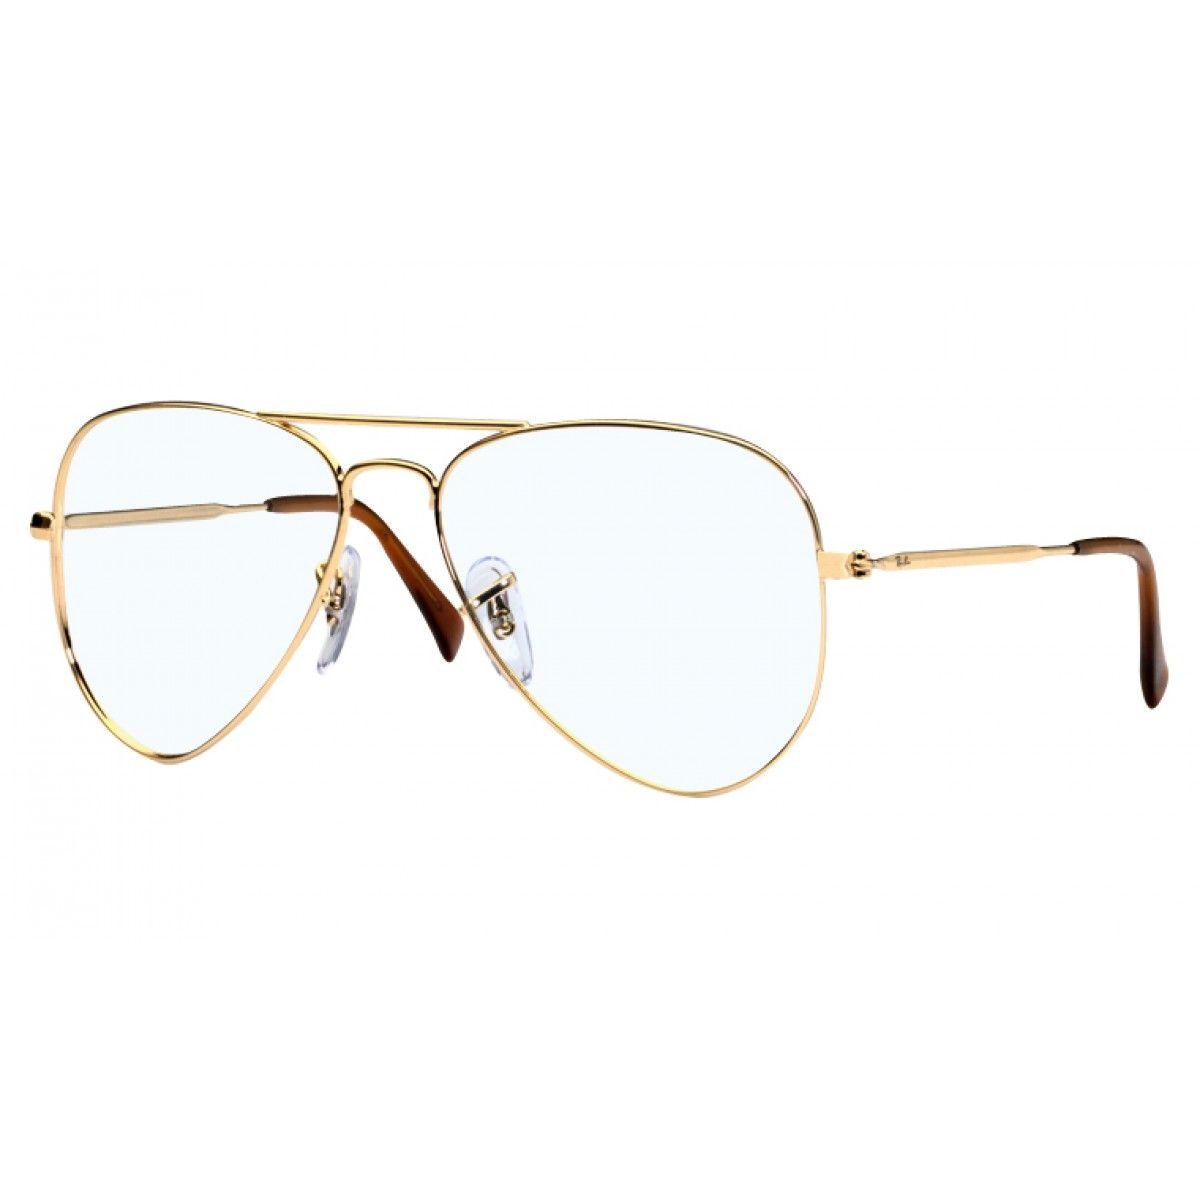 aviator glasses frames - Google Search | for how it makes me feel ...